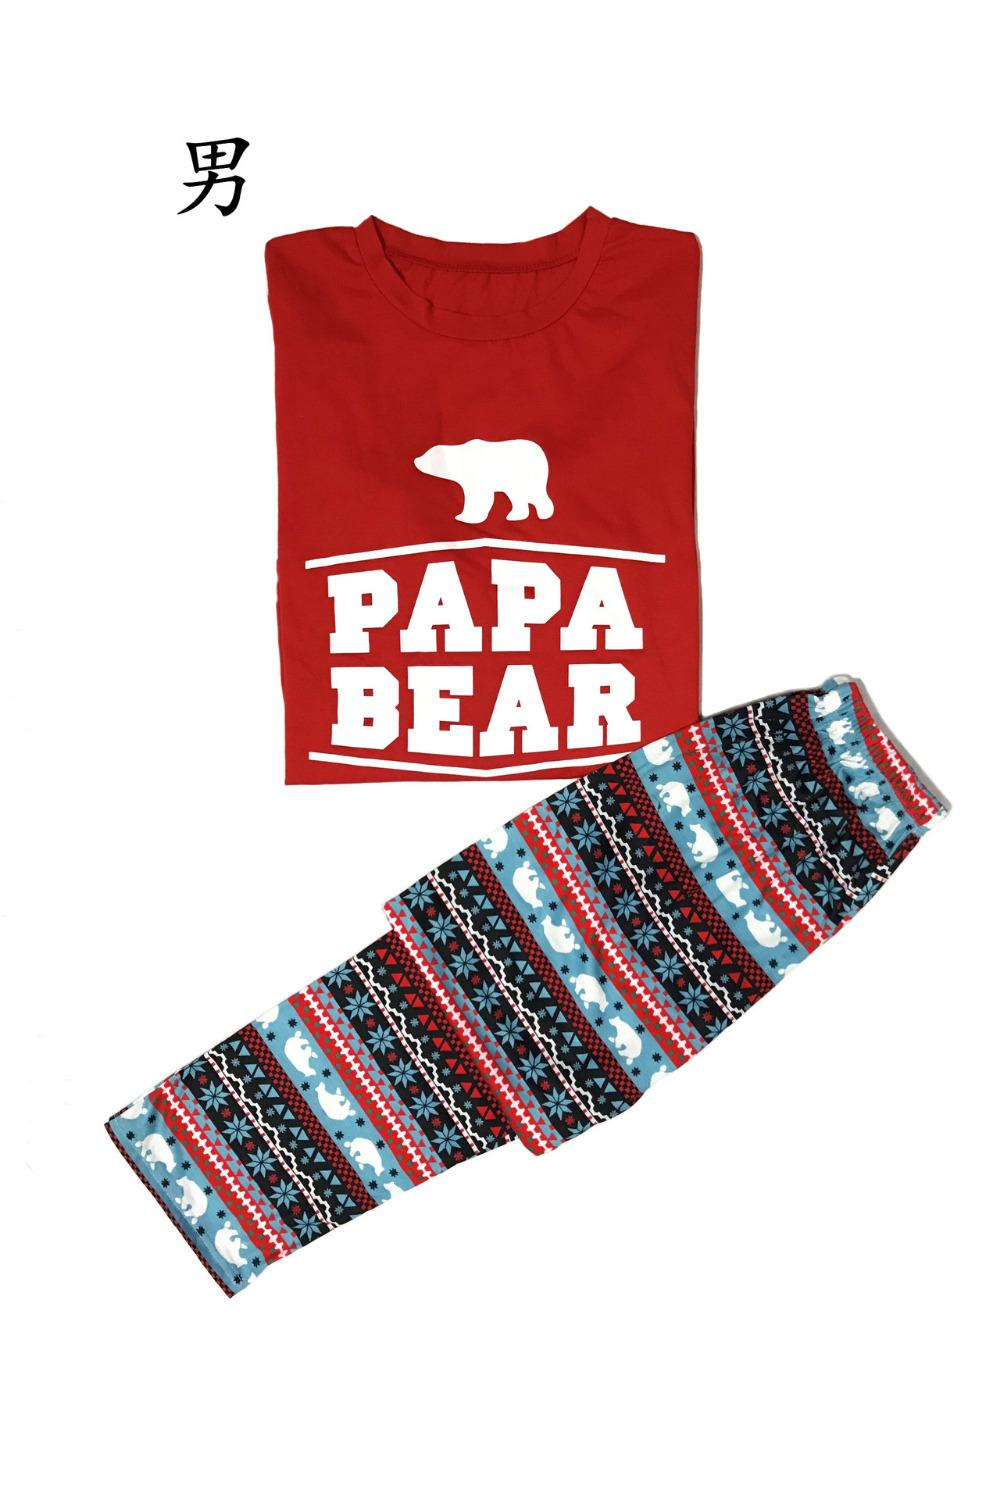 2017 Christmas Happy Bear Family Matching Outfits Pajamas for Father Mother Daughter Son Family Matching Look Clothes Set